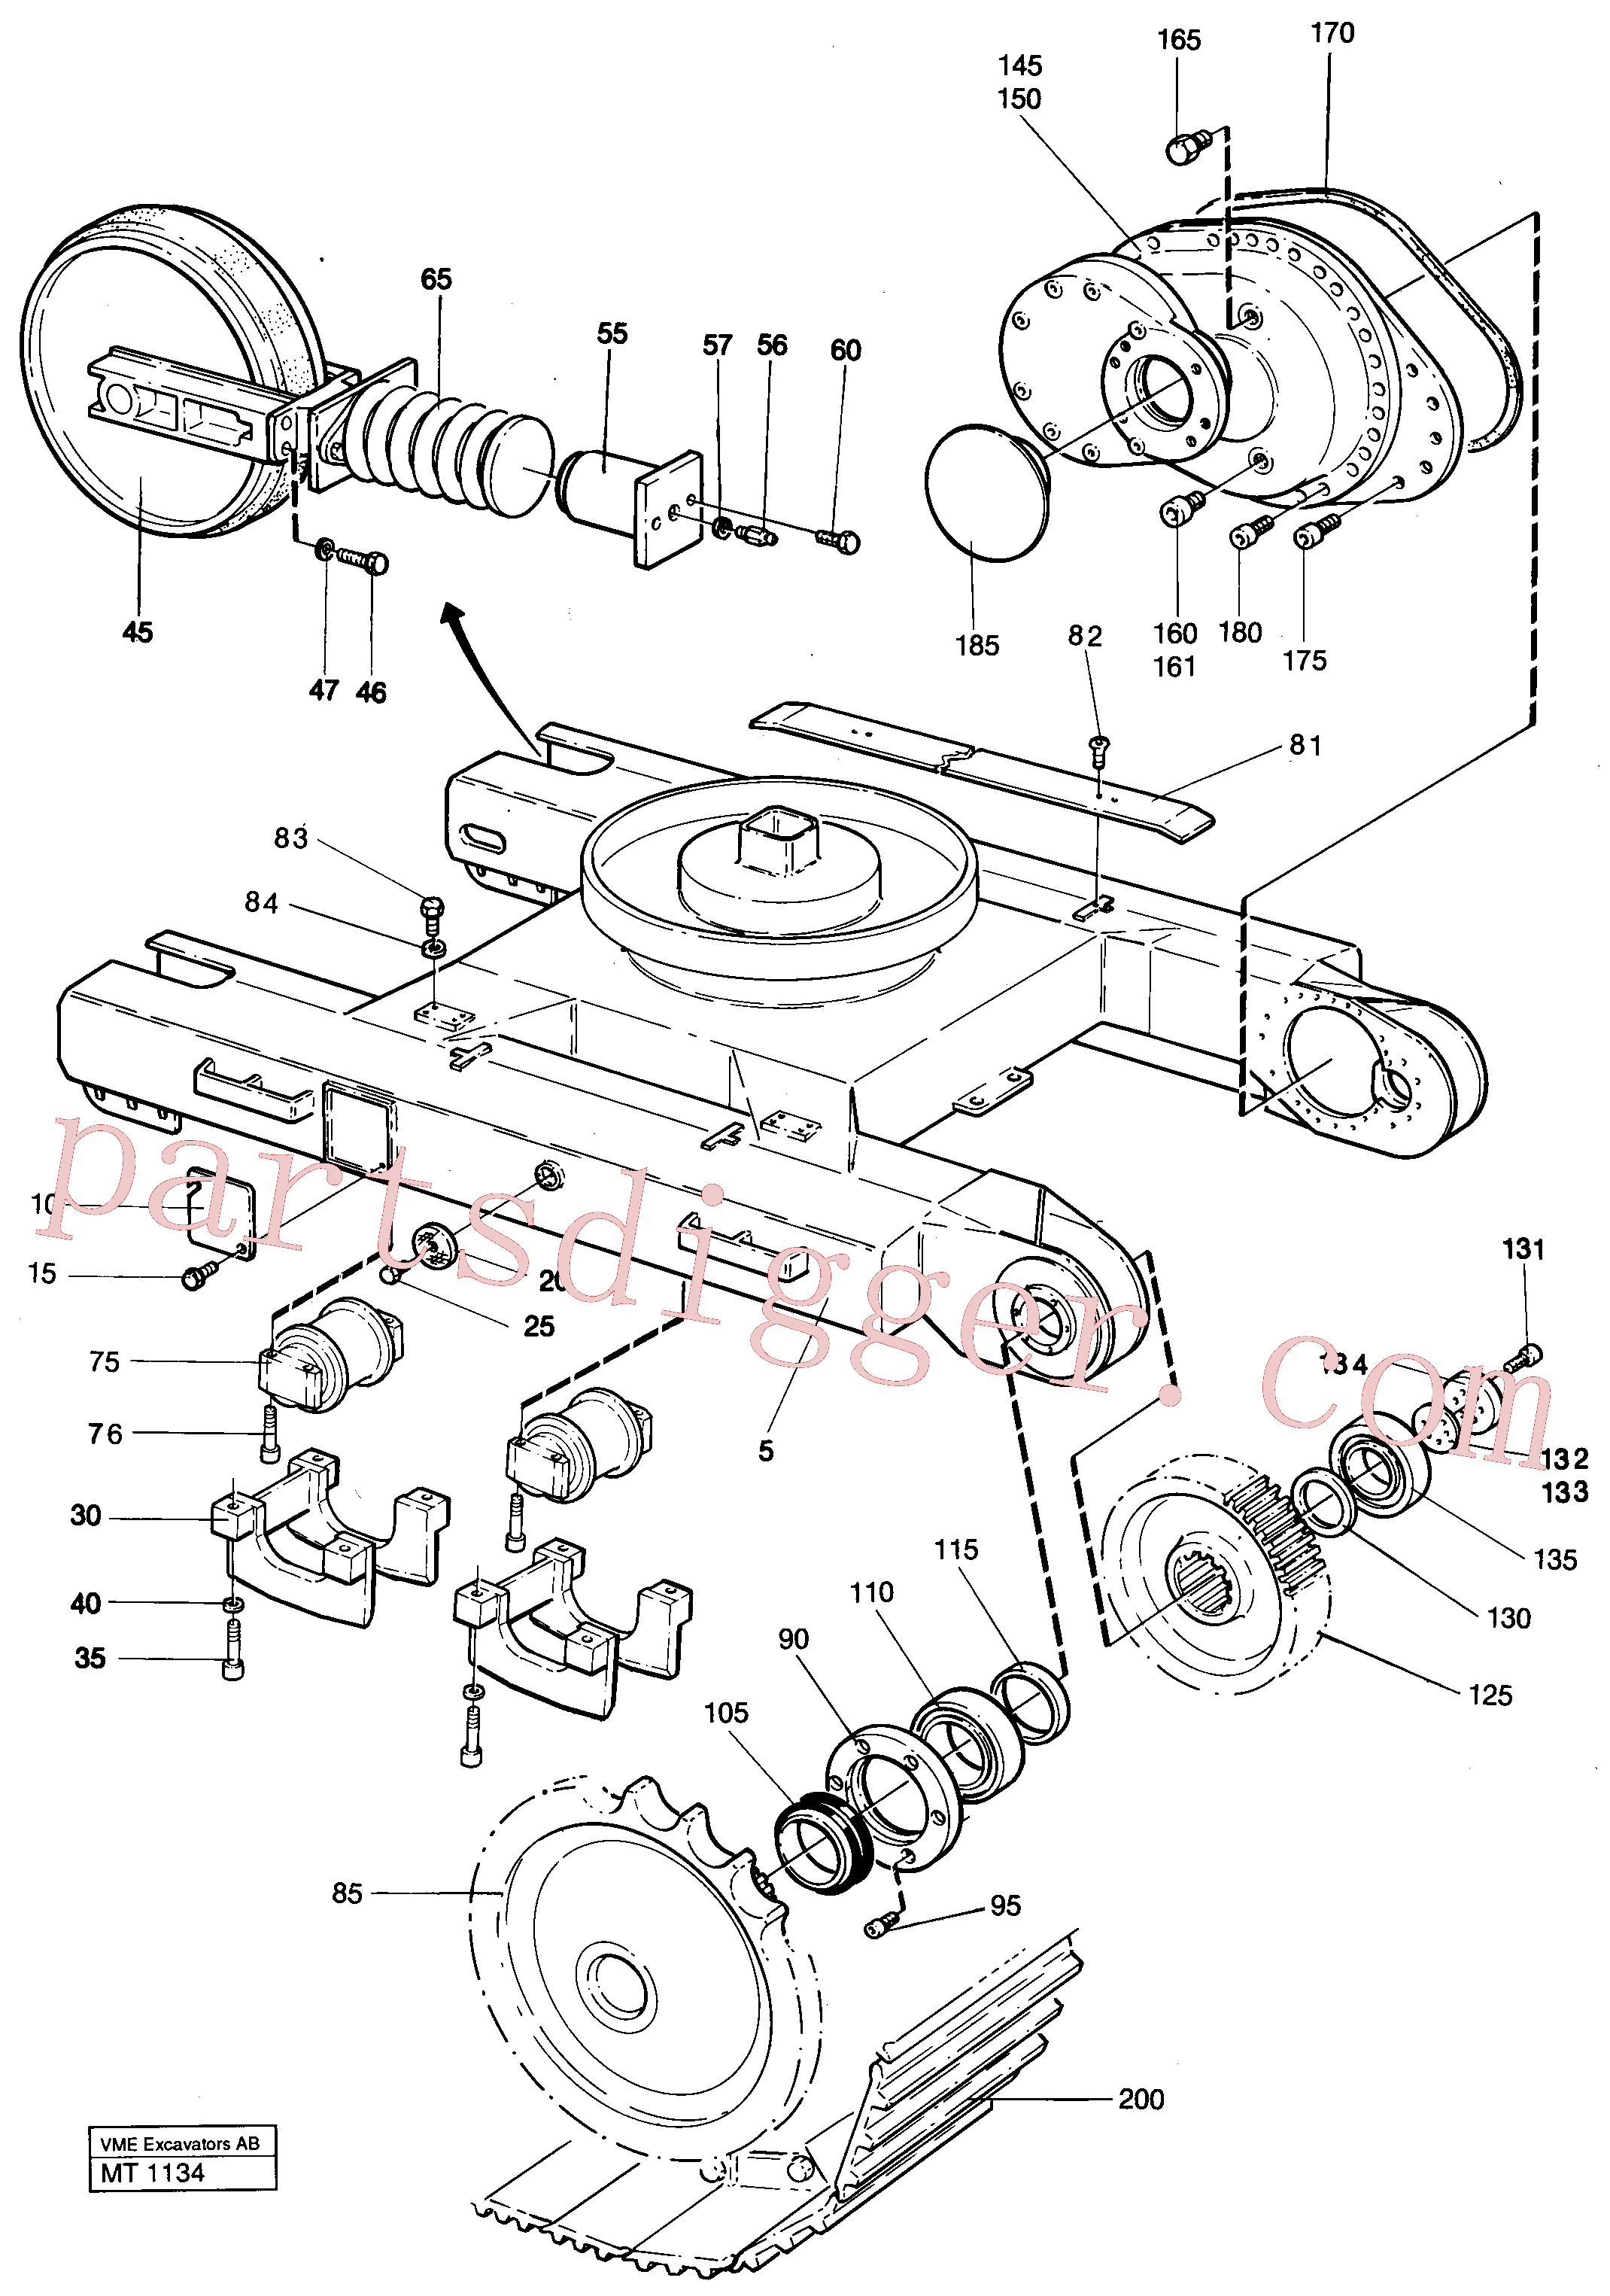 VOE13970967 for Volvo Undercarriage Ec 230 Undercarriage Ec 229(MT1134 assembly)